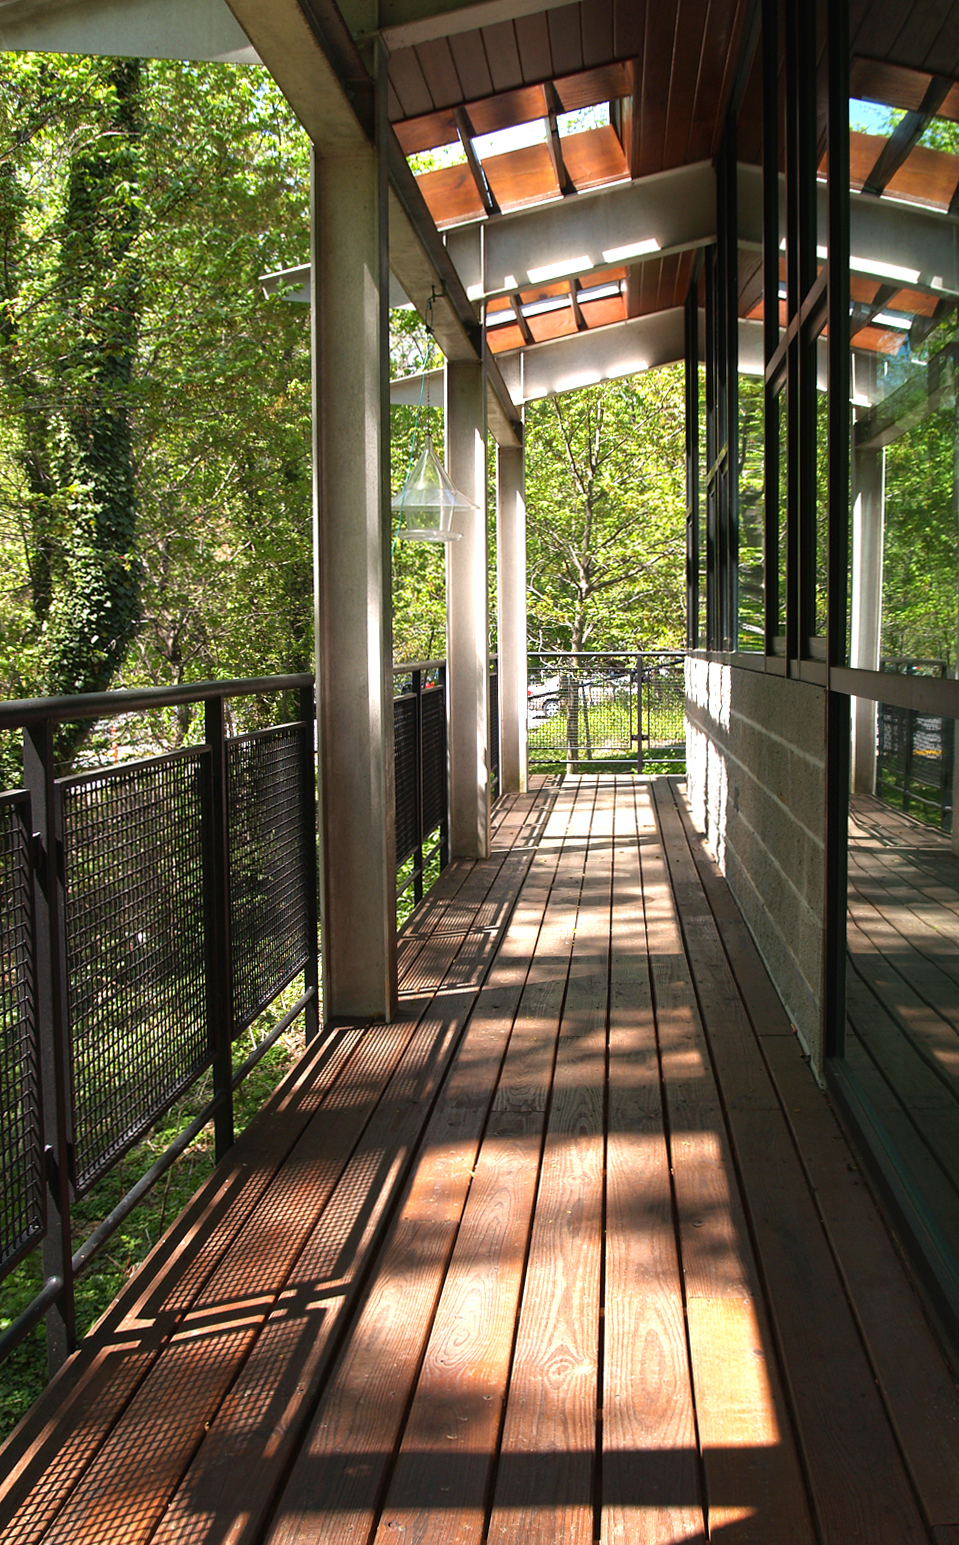 Banker Wire woven wire mesh creates a beautiful deck at this private school.